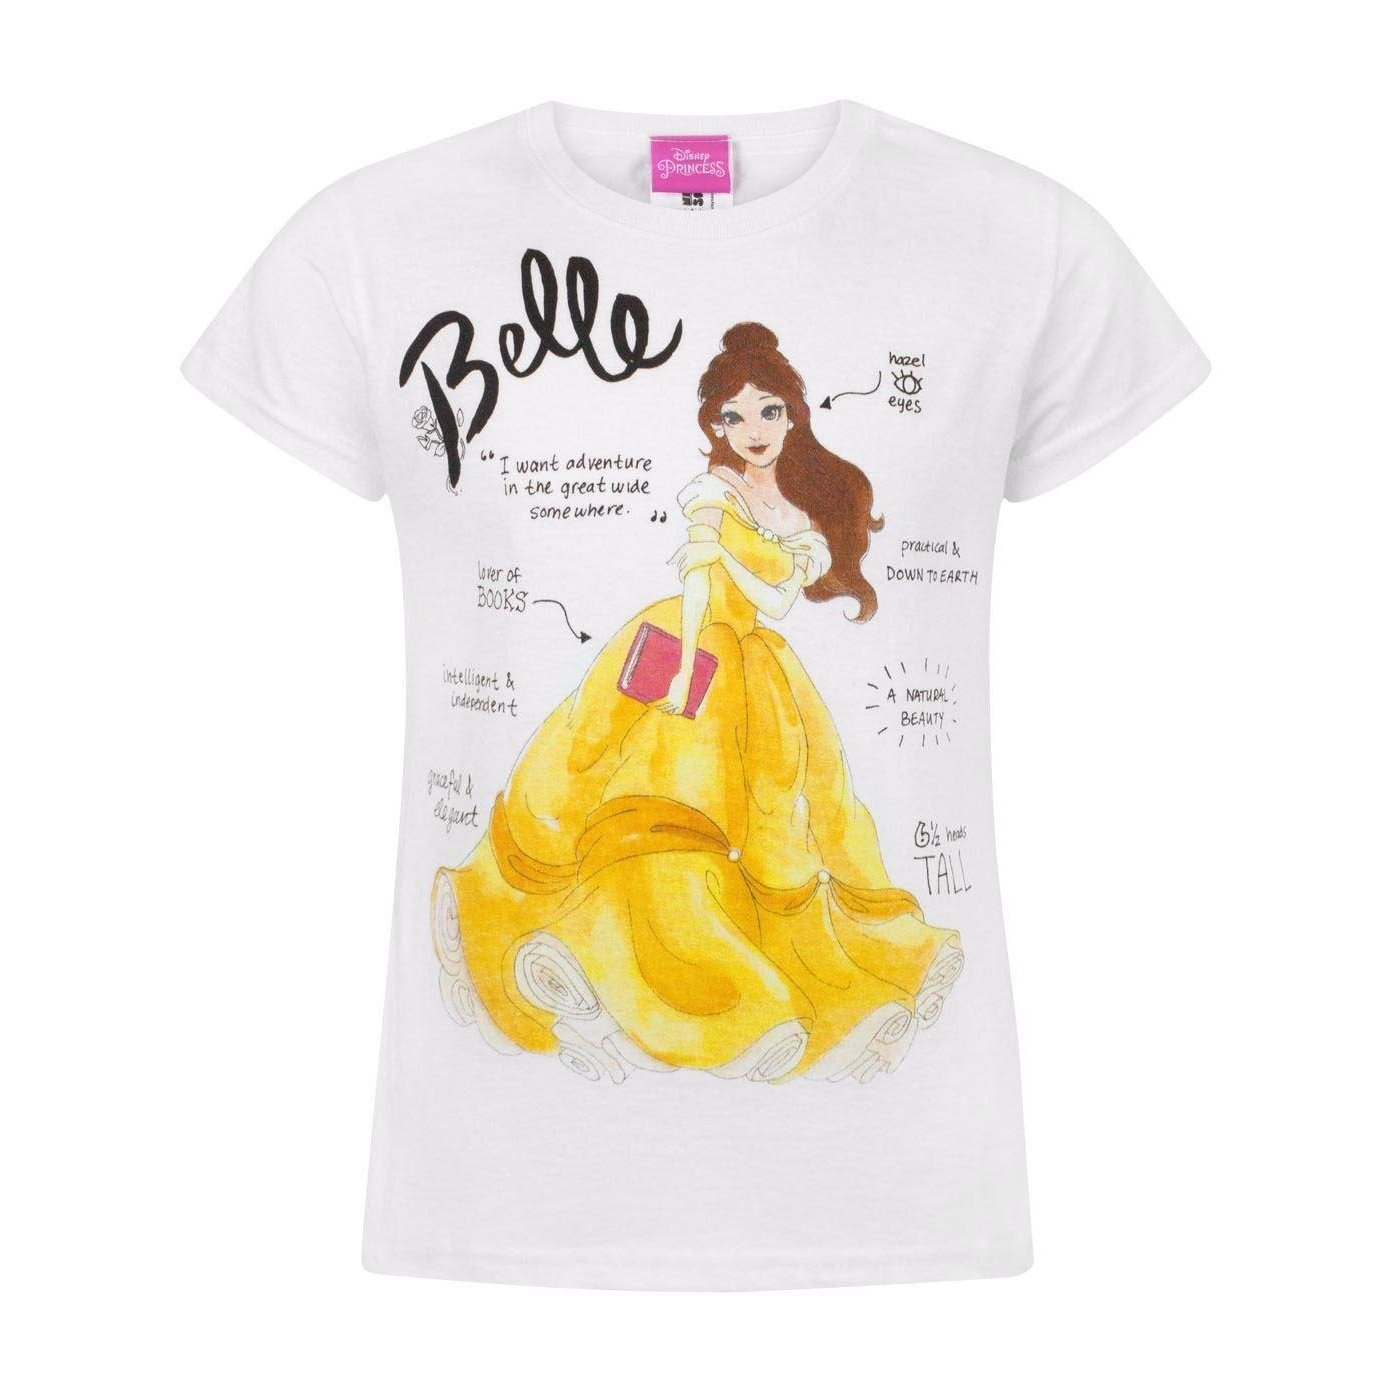 3495ed2e8 Amazon.com: Disney Childrens Girls Beauty and The Beast Belle T-Shirt  (12-13 Years) (White): Clothing